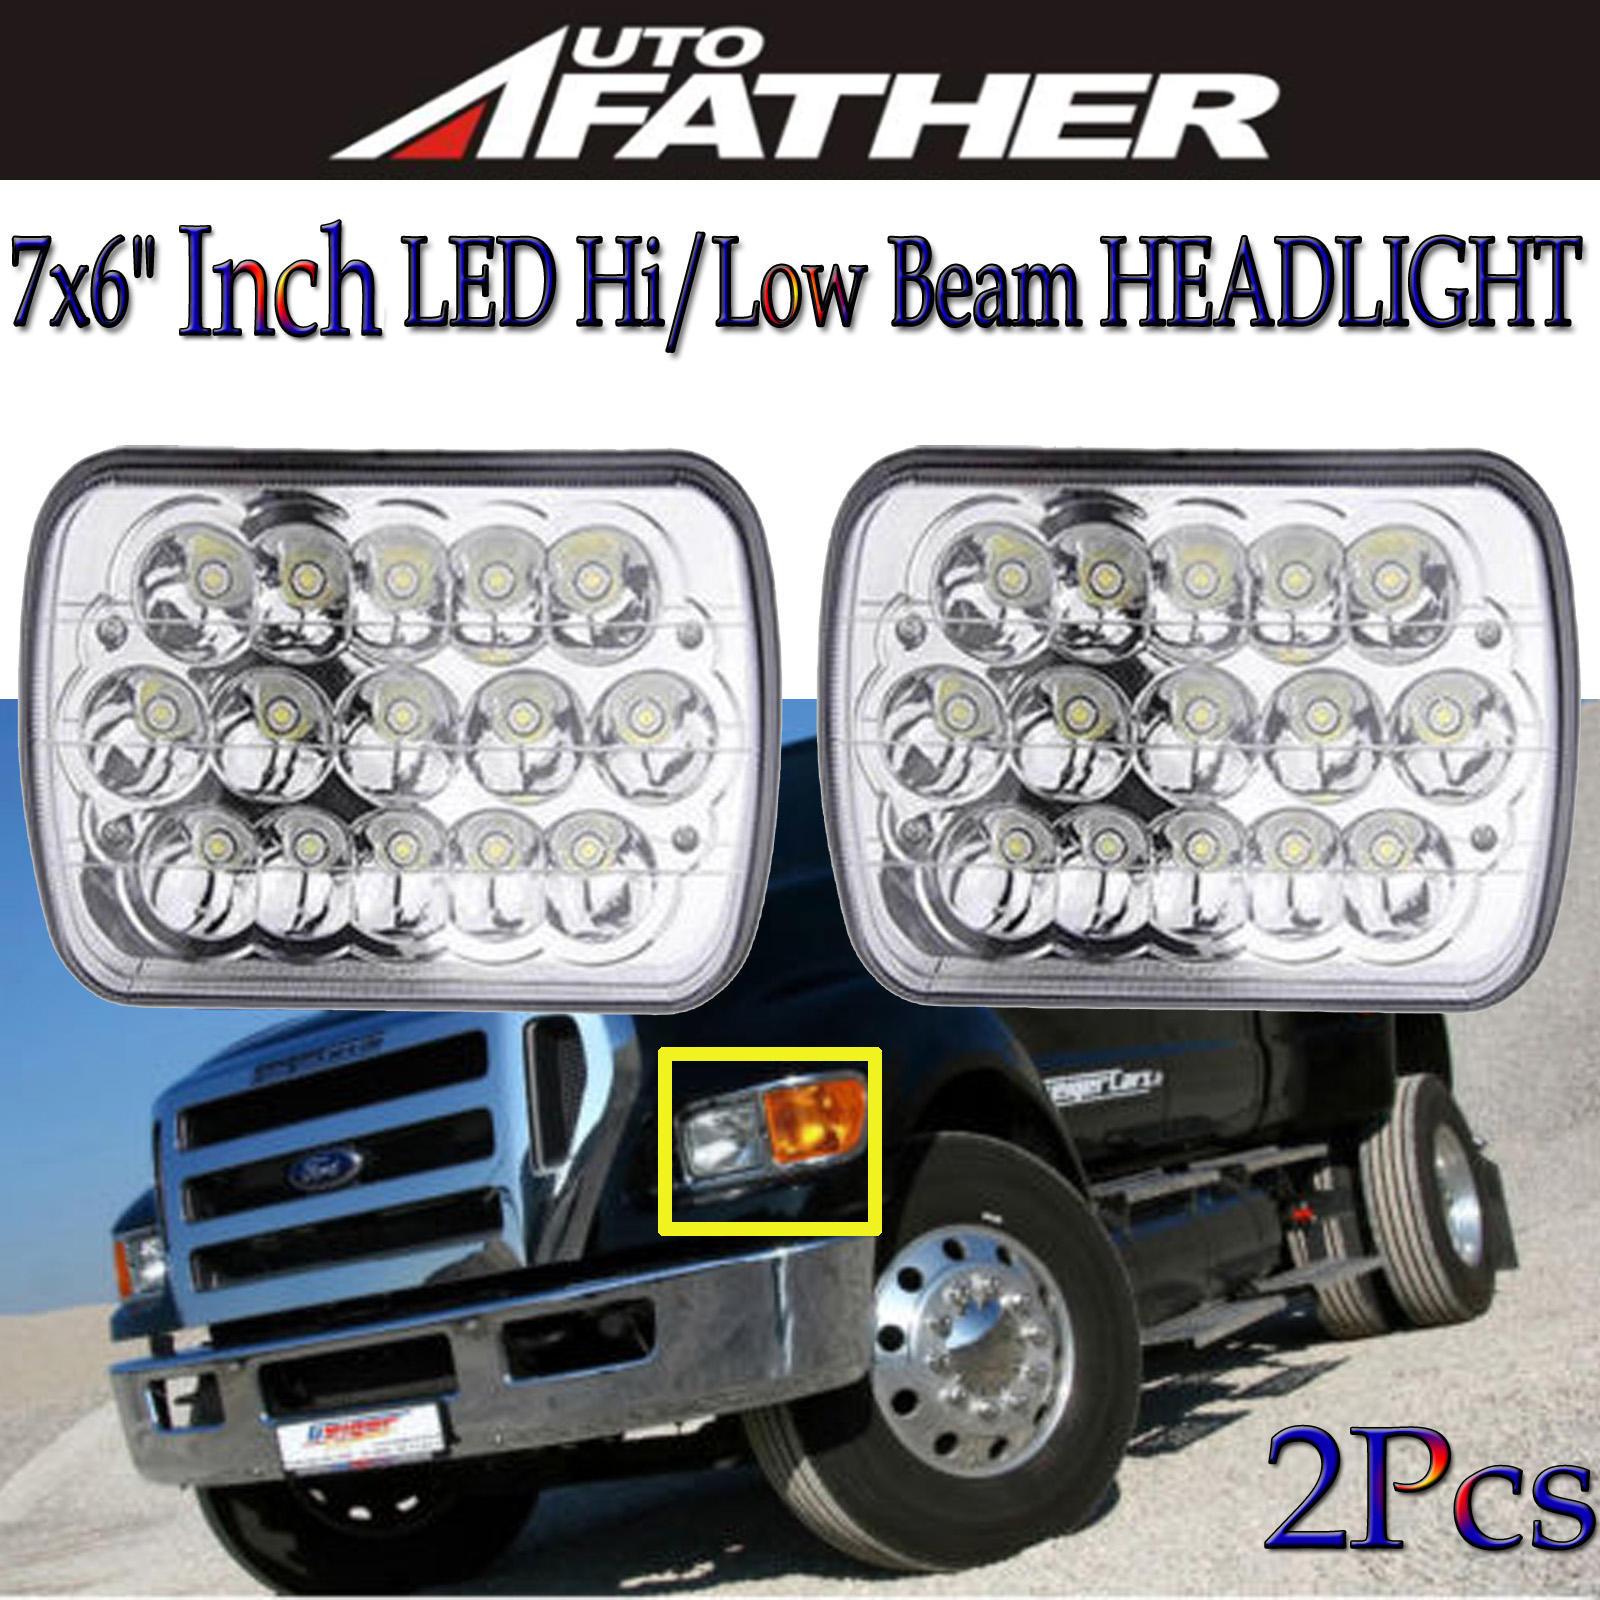 hight resolution of 7x6 inch led headlight upgrade for ford superduty truck f550 f600 f650 f700 f750